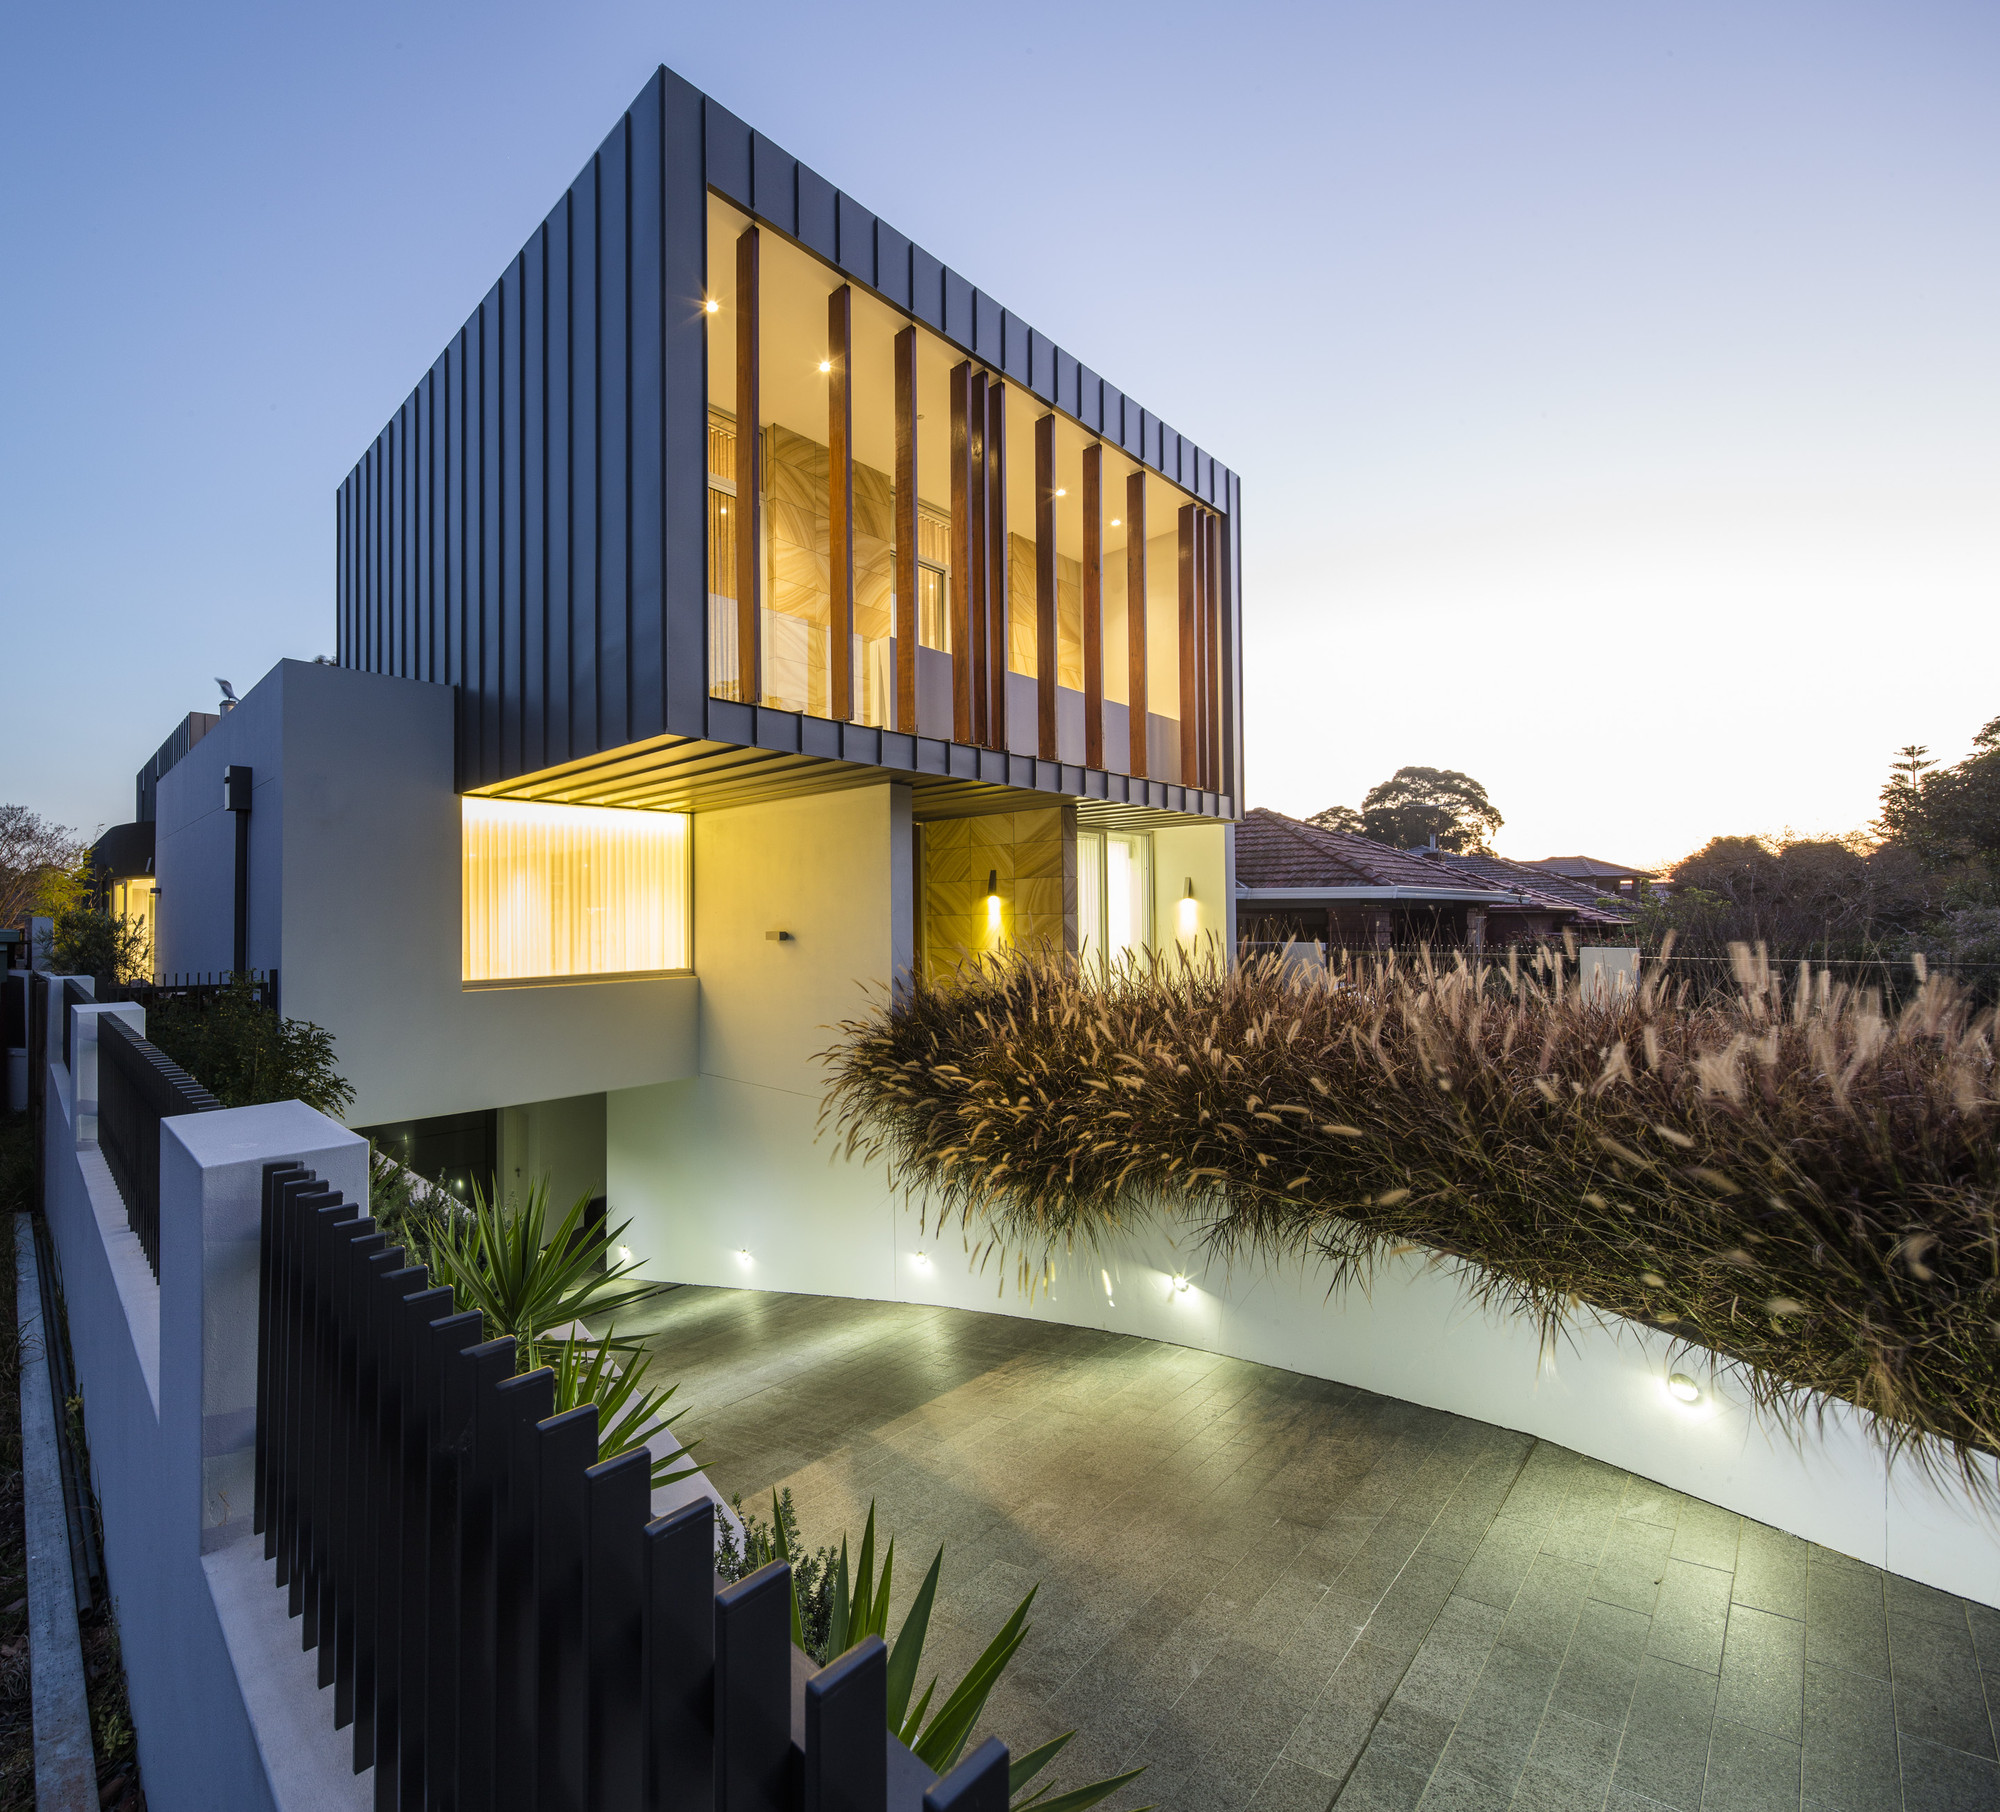 Box House / Zouk Architects, © 3.2.1 Photography